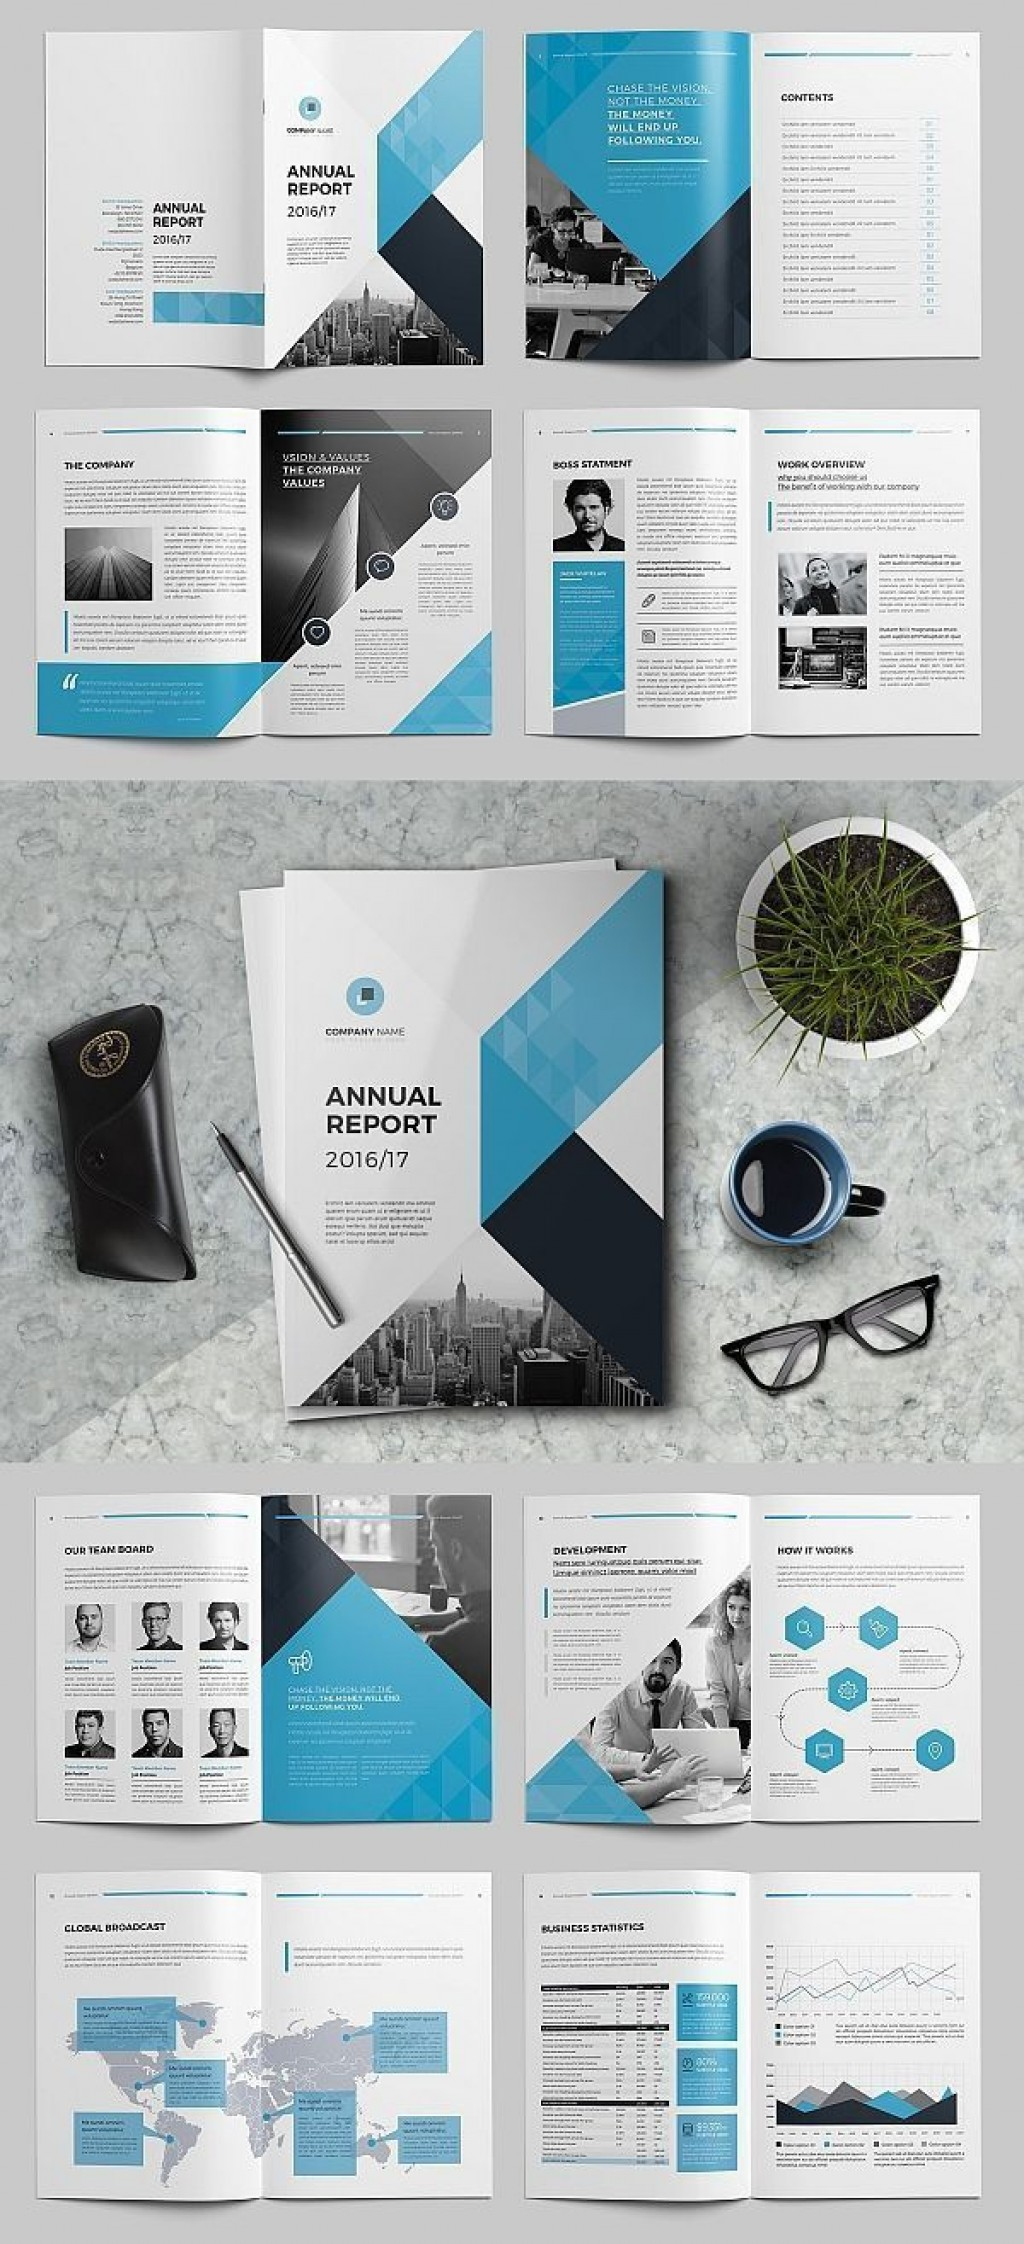 001 Incredible Free Annual Report Template Indesign Image  Adobe Non ProfitLarge